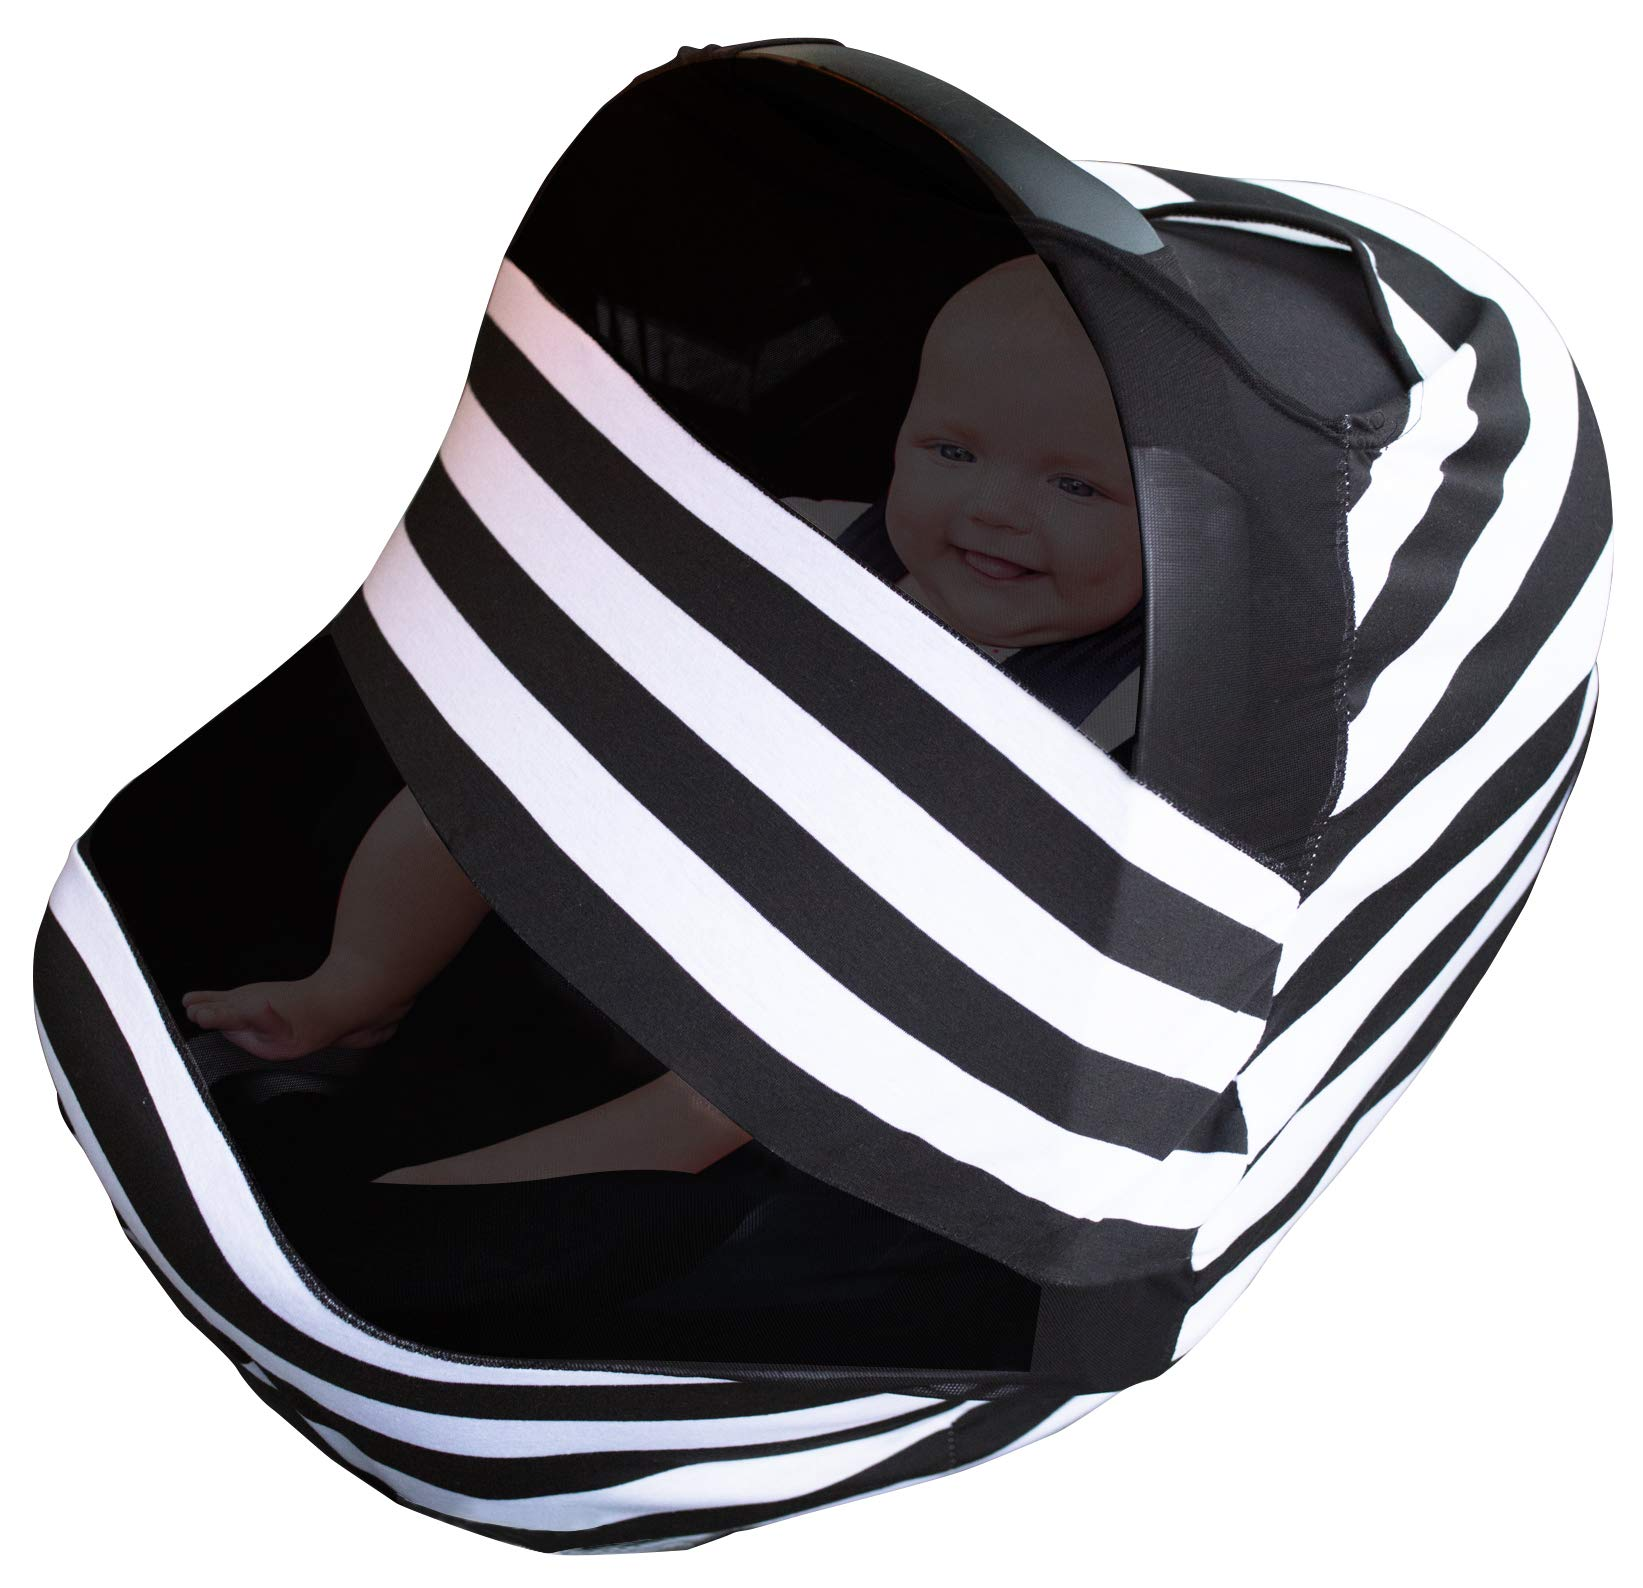 Nursing Cover For Baby Breastfeeding | Infant Stroller, Carseat, Shopping Cart and High Chair Canopy Cover Up For Babies | Soft Stretchy Seat Car Covers For Boys and Girls | Multi Use Infinity Scarf